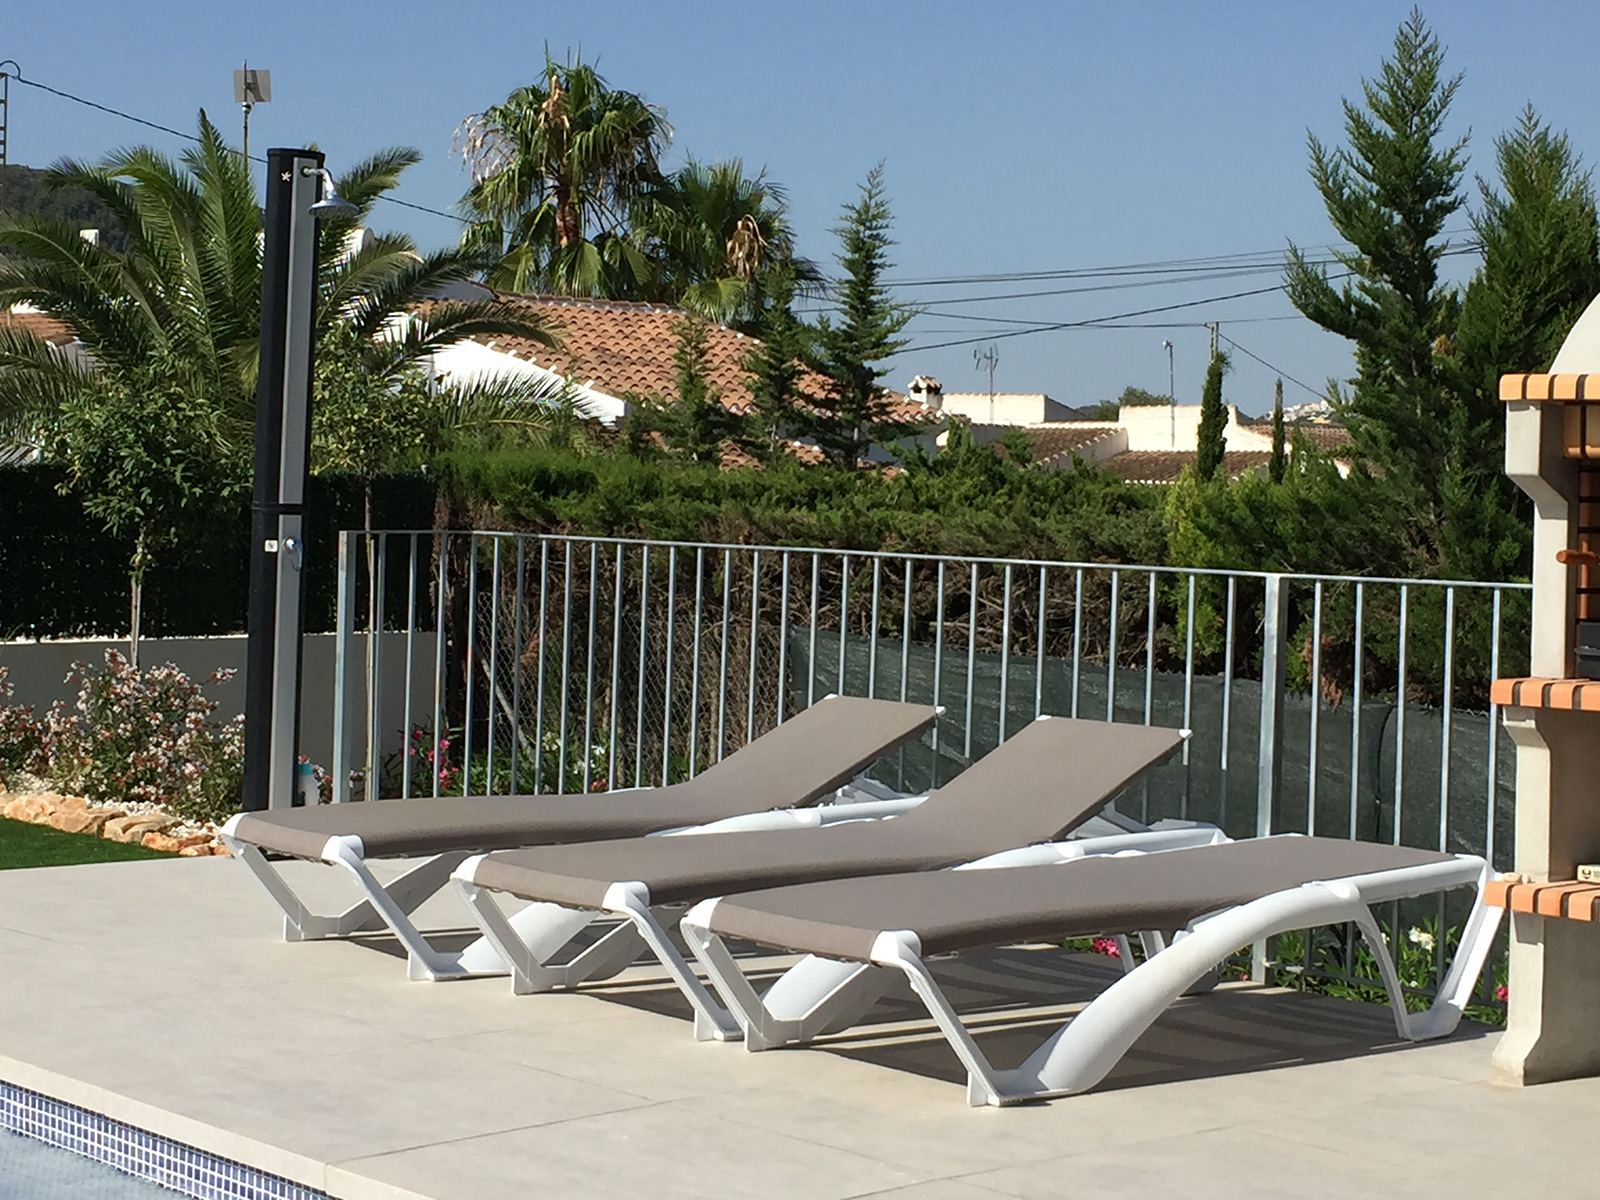 sunloungers-by-swimming-pool-spanish-holiday-villa